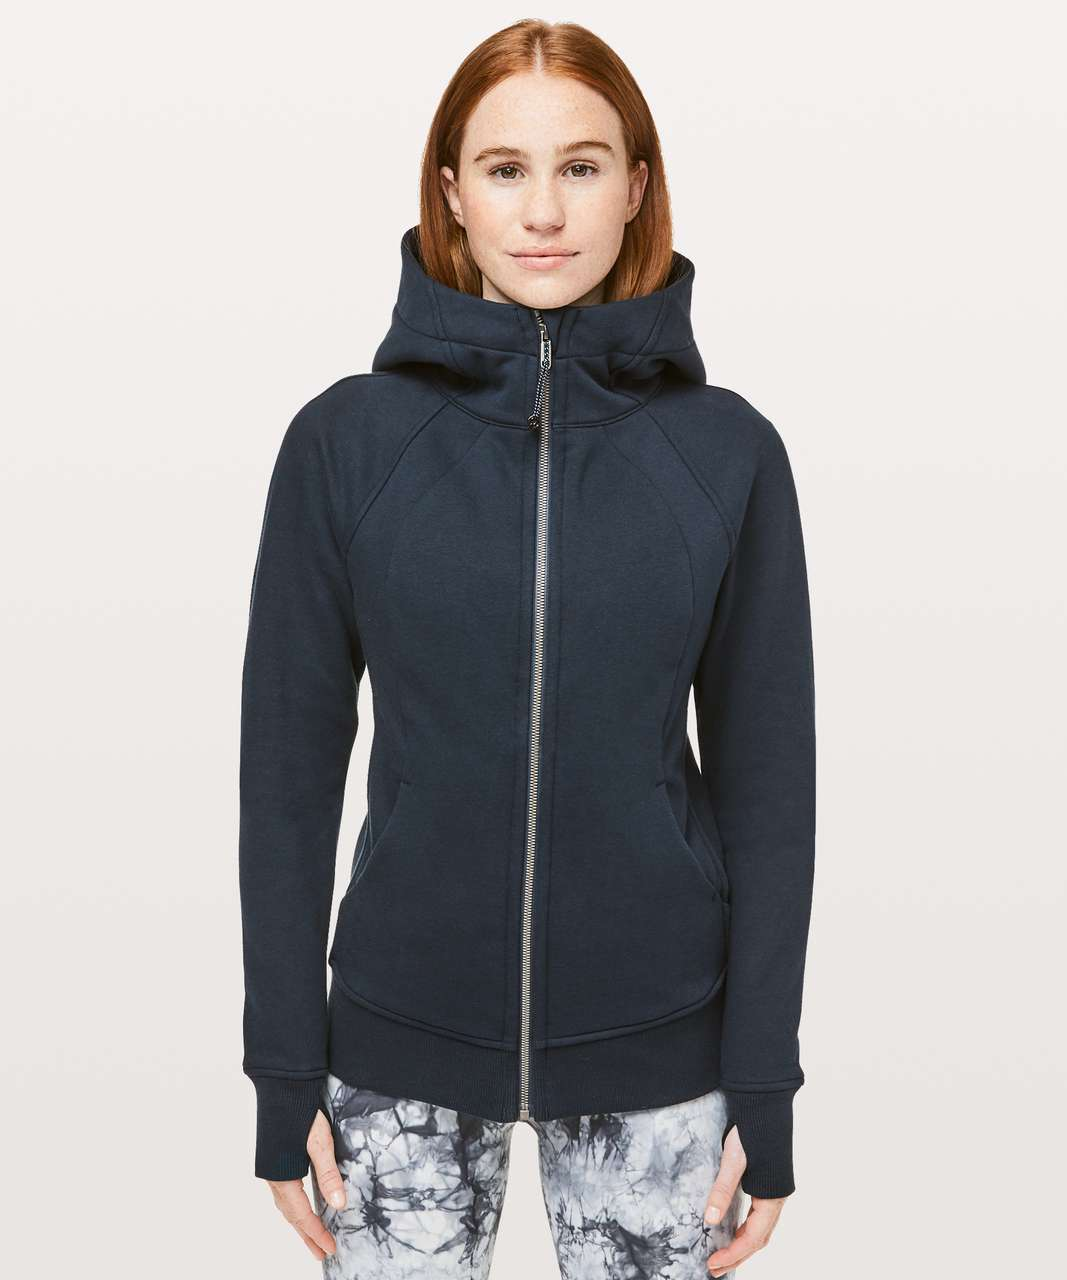 Lululemon Light As Warmth Scuba Hoodie - Nocturnal Teal